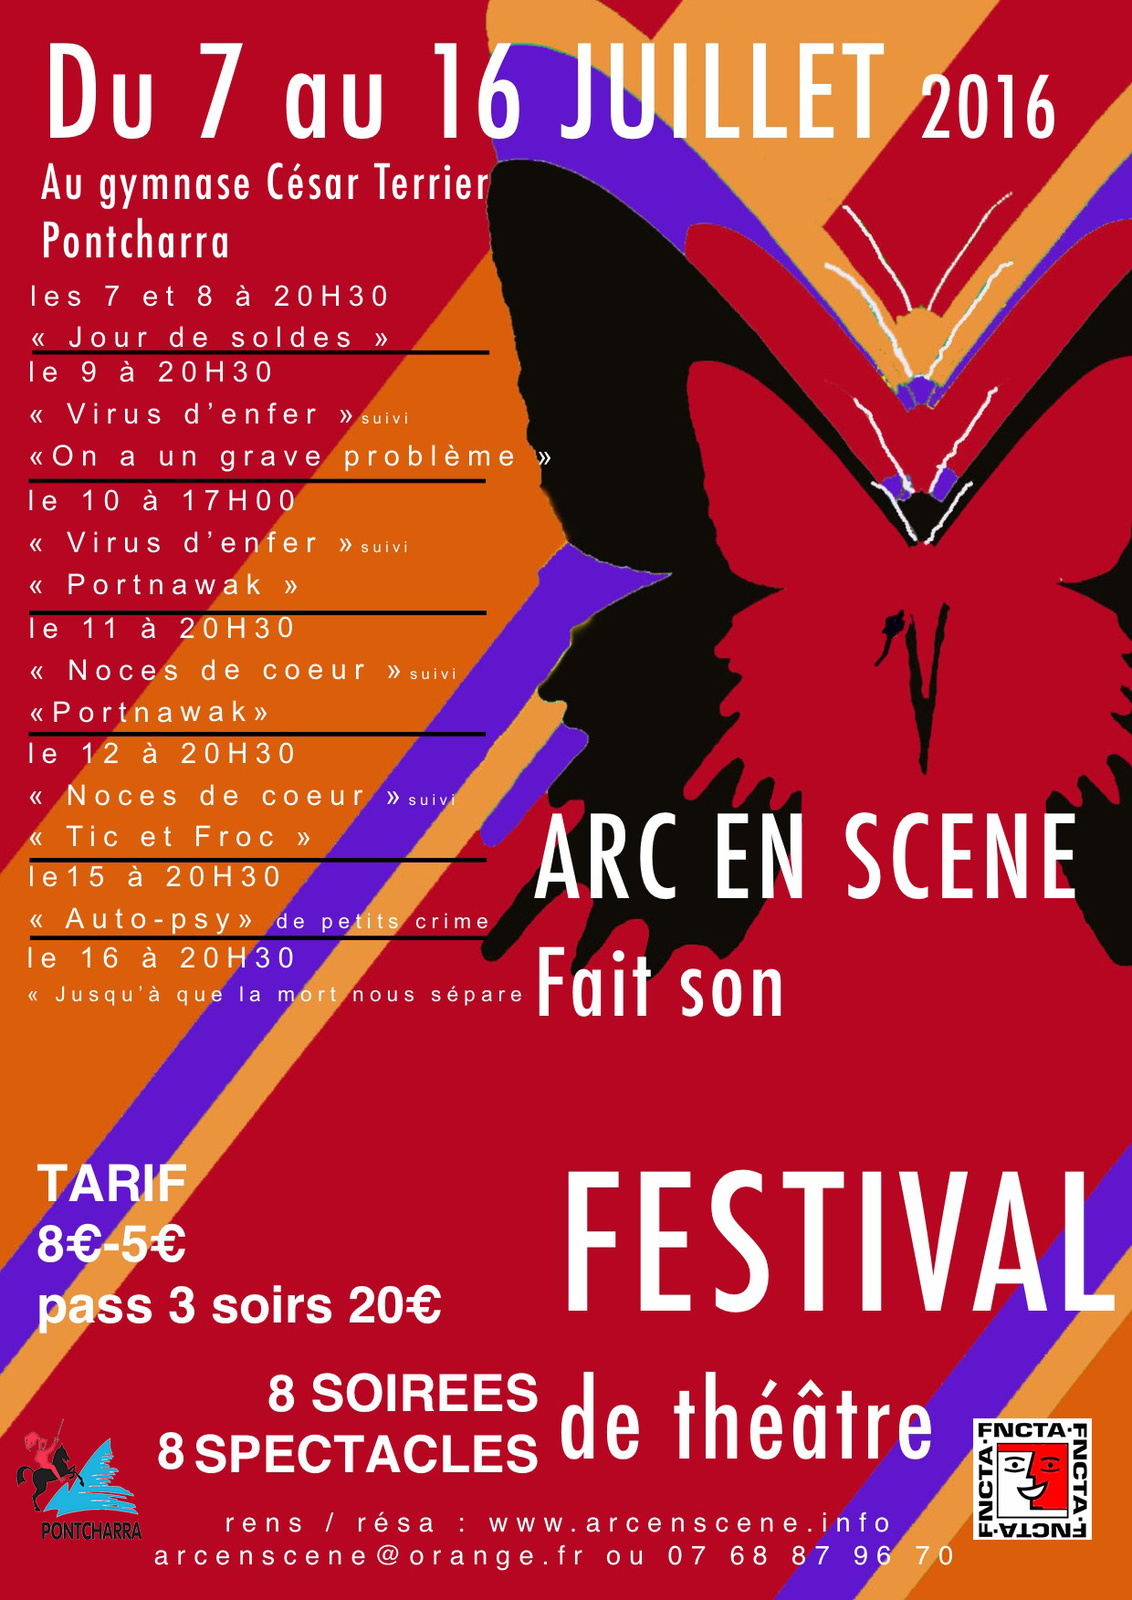 archive arc en sc ne fait son festival du 7 au 16 juillet 2016 pontcharra is re fncta. Black Bedroom Furniture Sets. Home Design Ideas